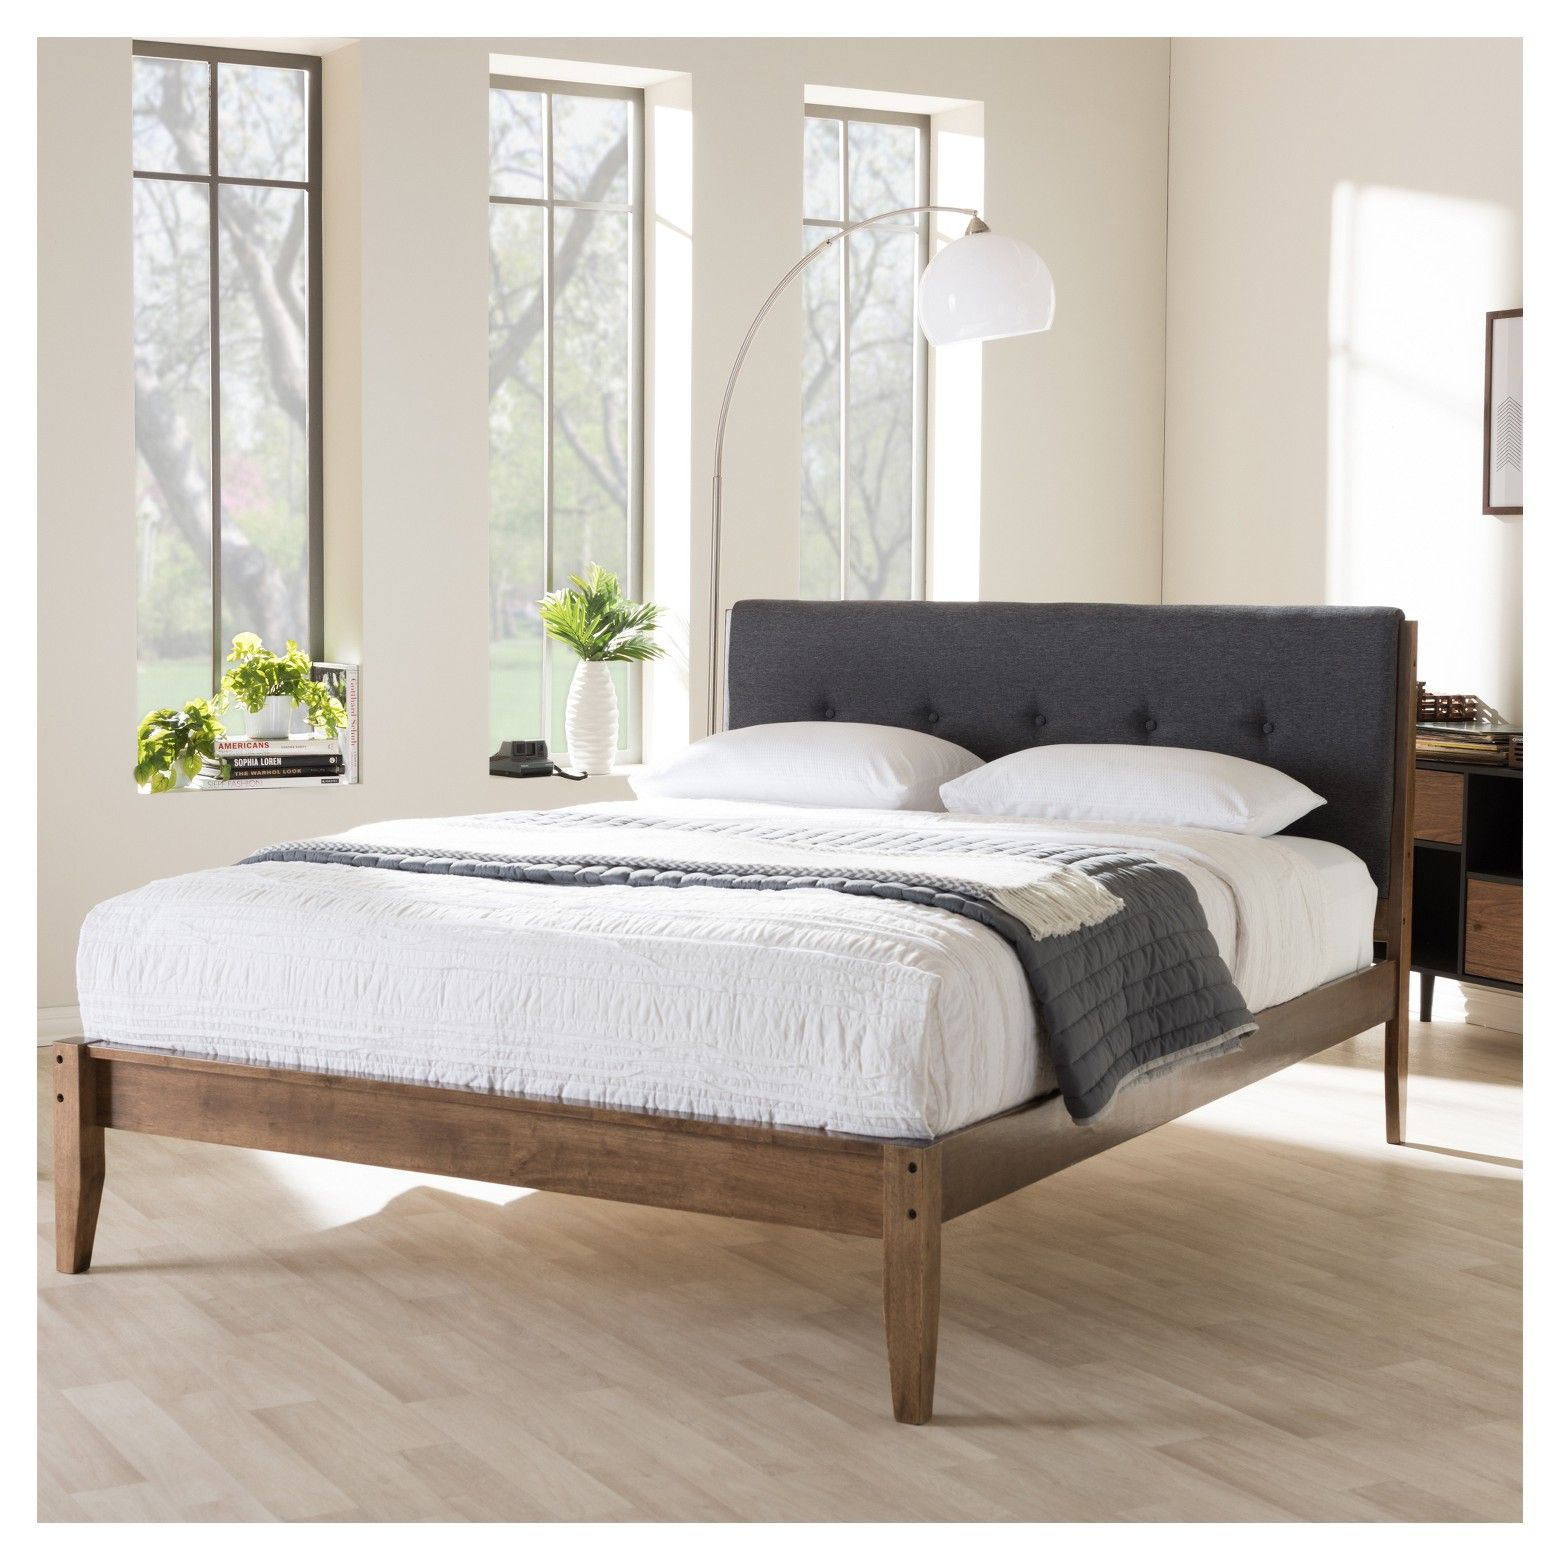 Leyton Mid Century Modern Fabric Upholstered Platform Bed King Gray Upholstered Platform Bed King Upholstered Platform Bed Upholstered Platform Bed Queen